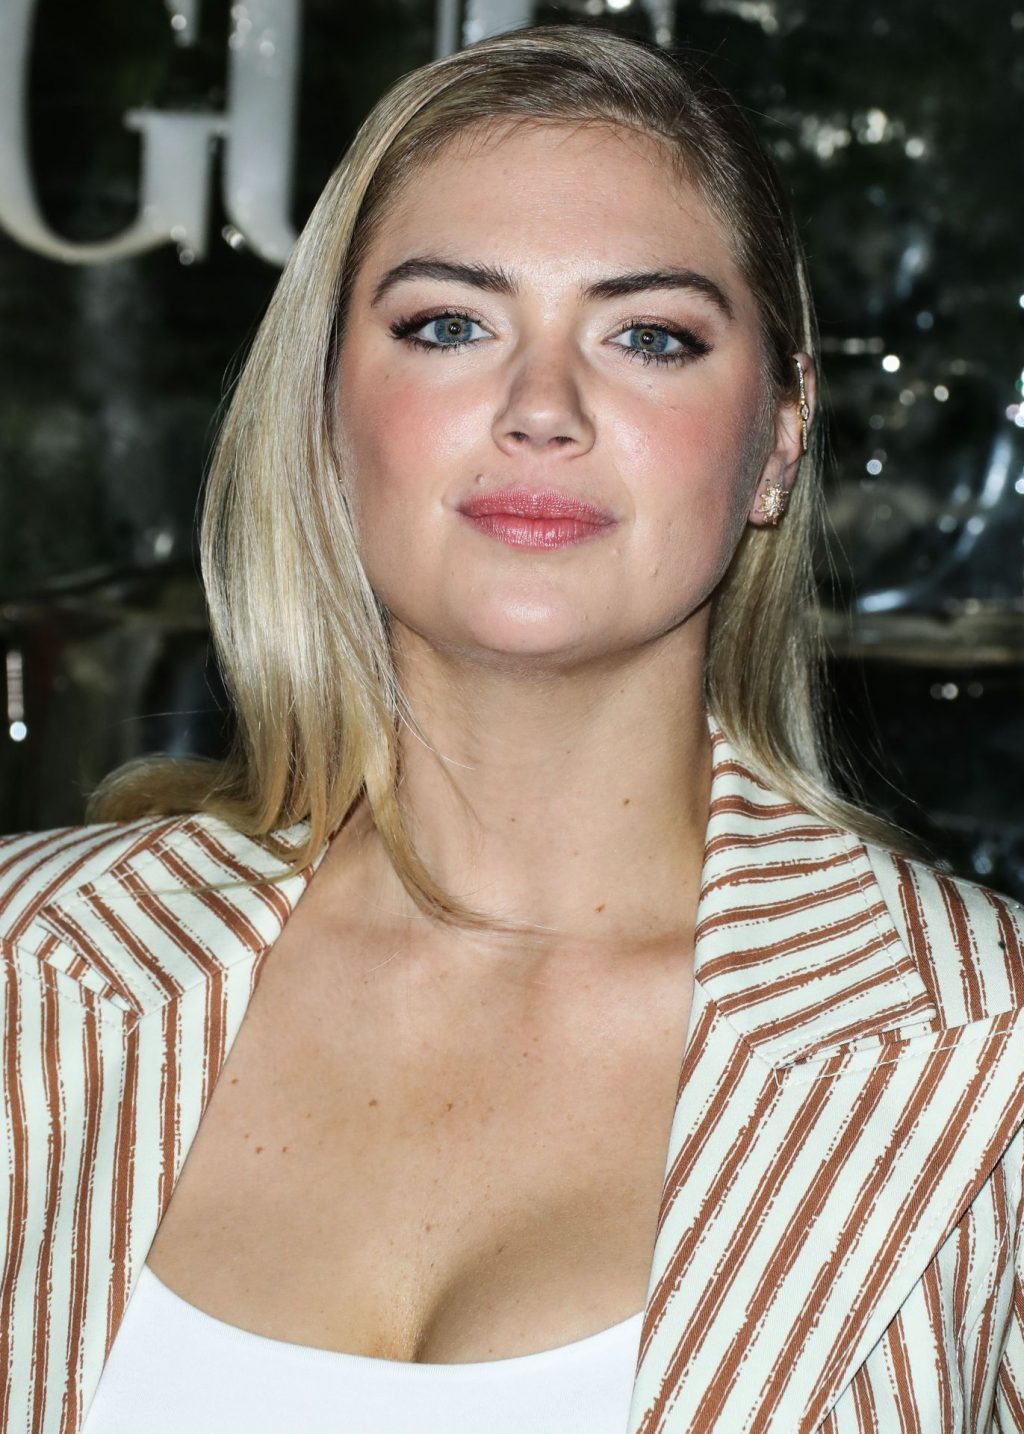 Kate Upton Sexy The Fappening Blog 22 1024x1434 - Kate Upton Attends Canada Goose And Vogue Cocktails & Conversations (104 Photos)